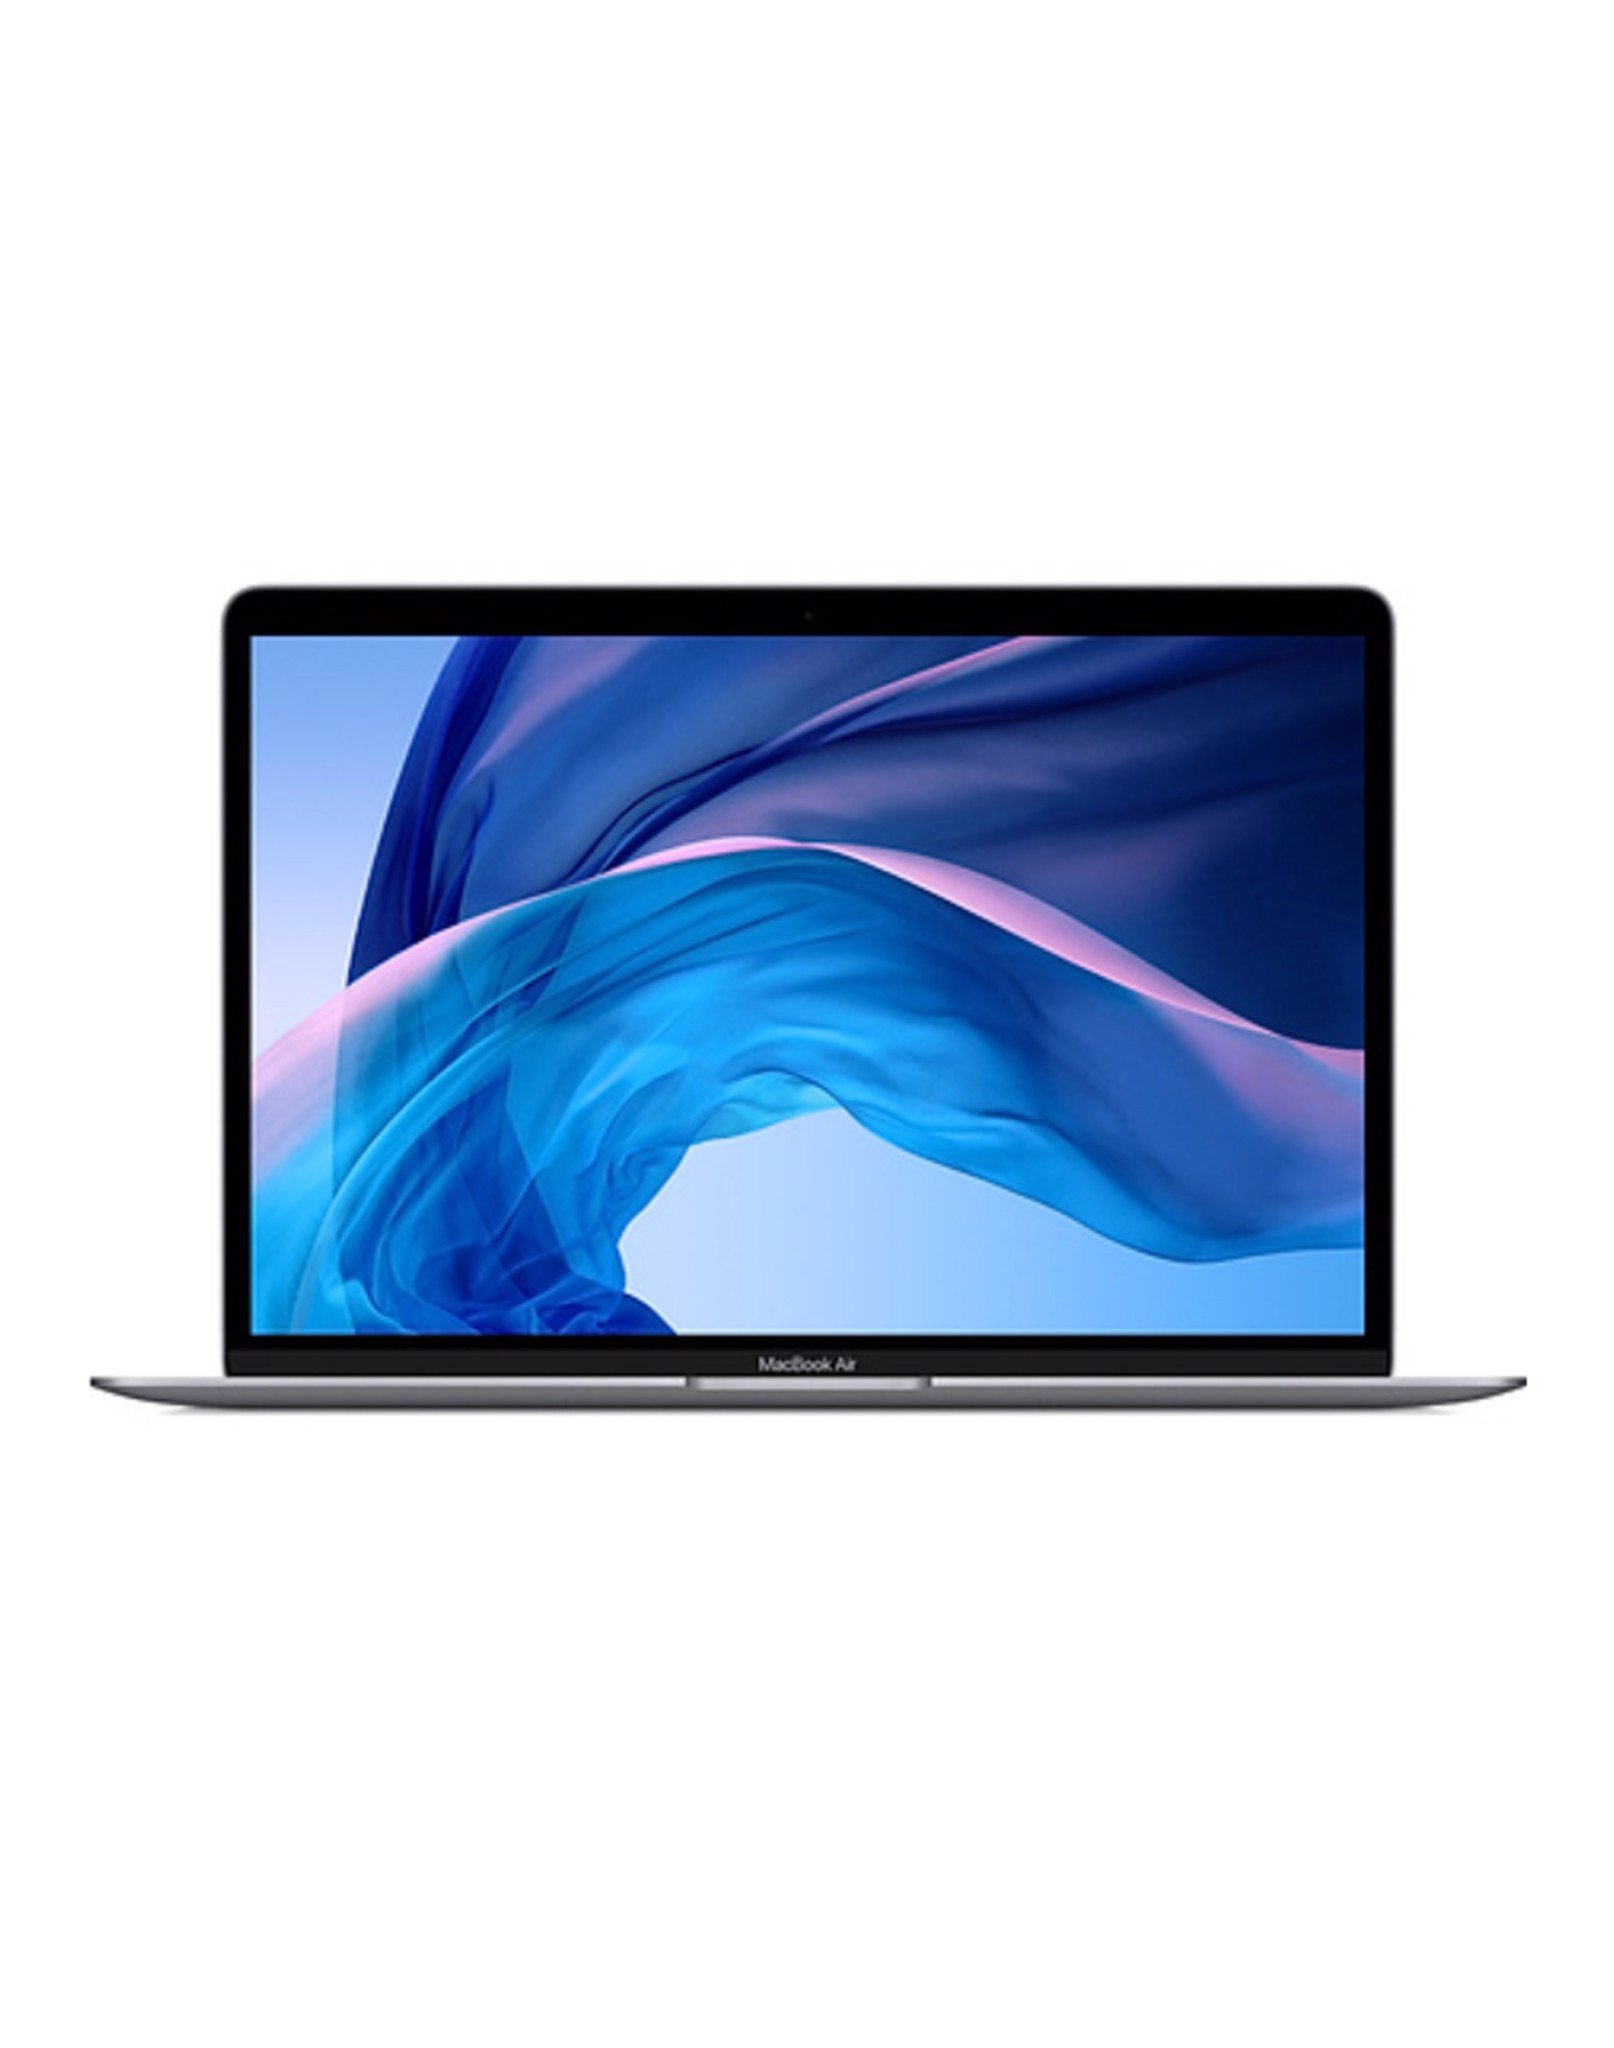 Macbook Air 2019 13 inch - SSD 256GB